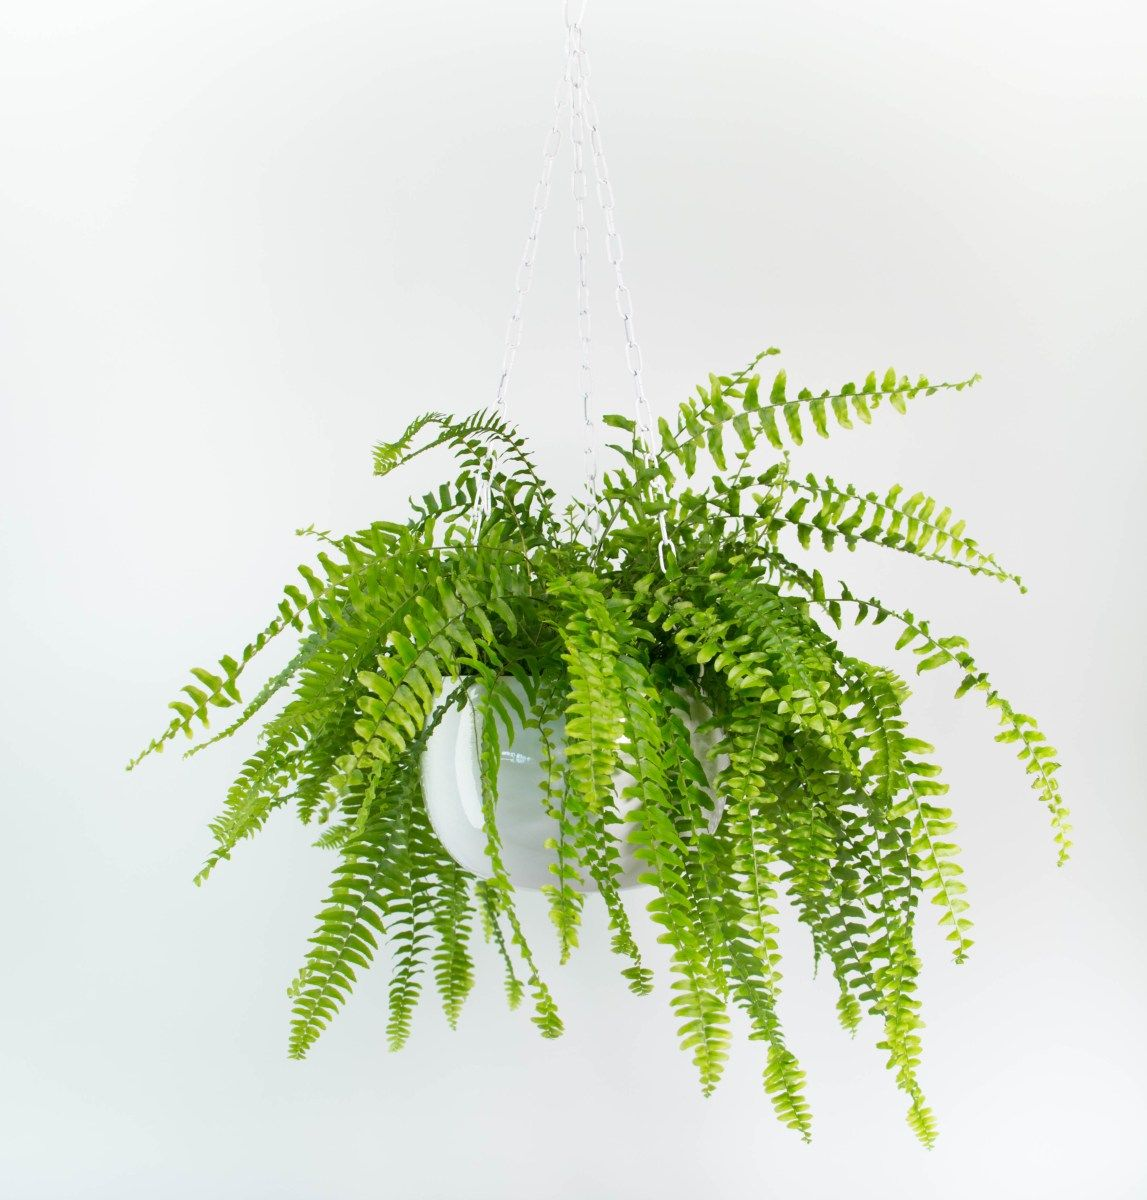 Ferns Like This Boston Fern Love Humidity Most Homes Are